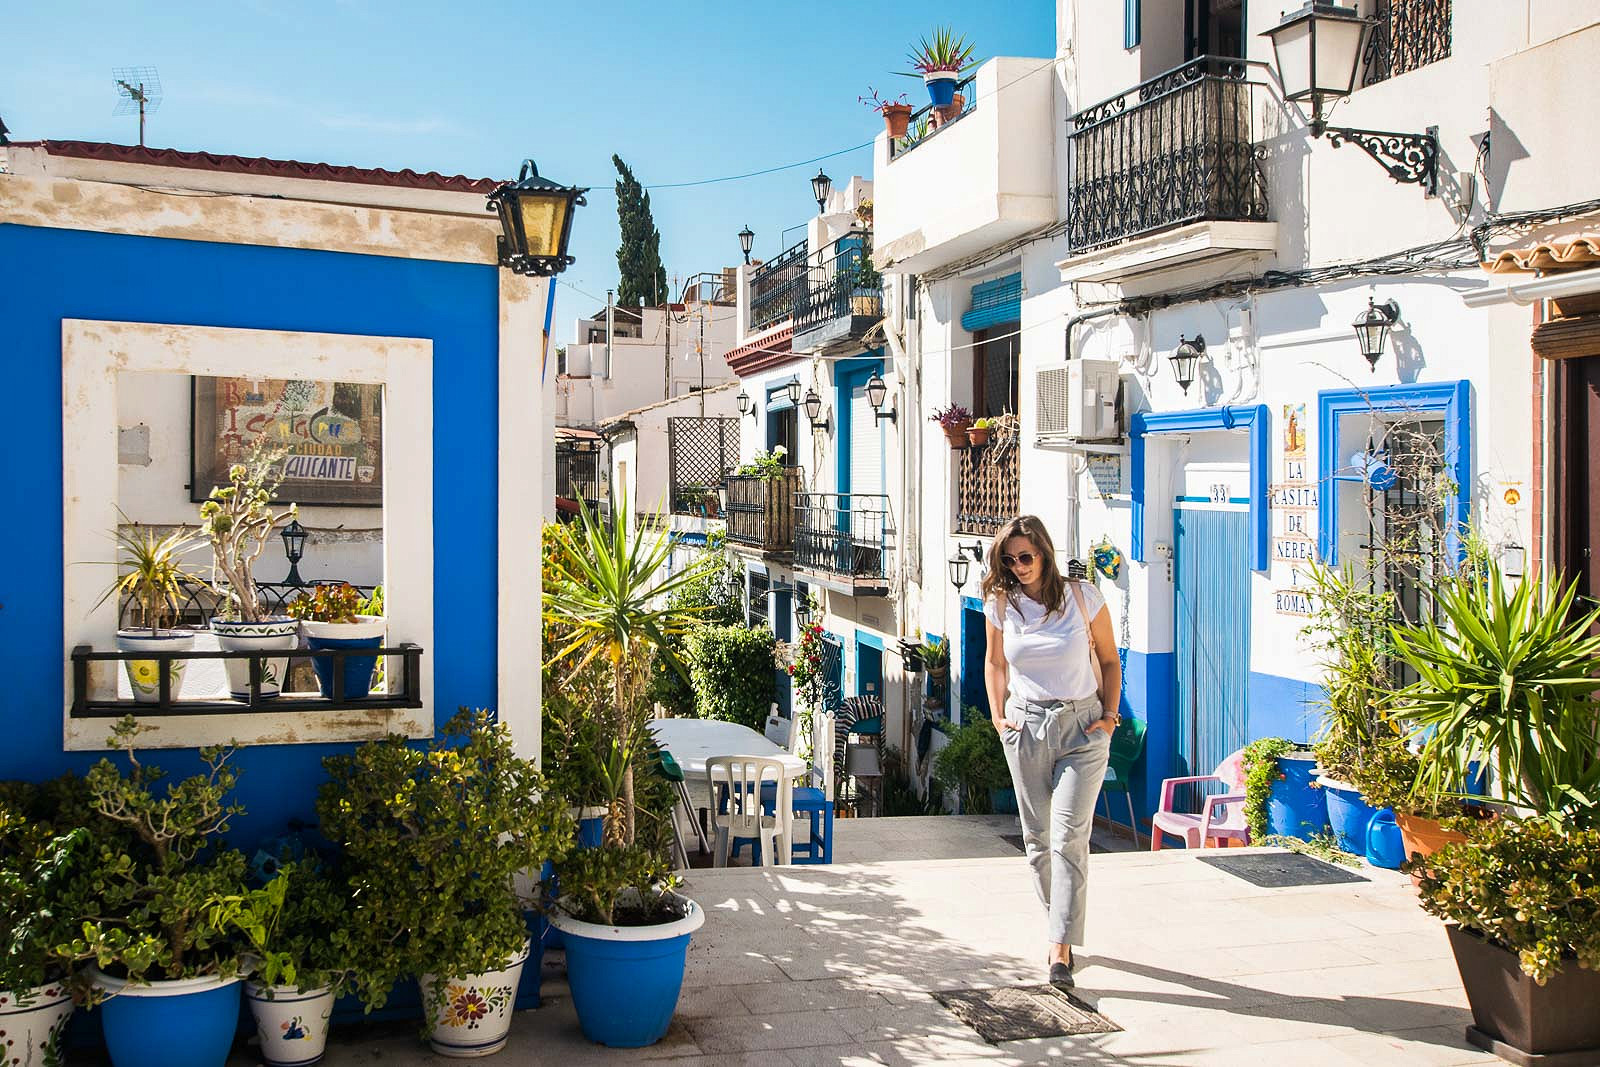 What to See in Alicante? 8 Places You Can't Miss